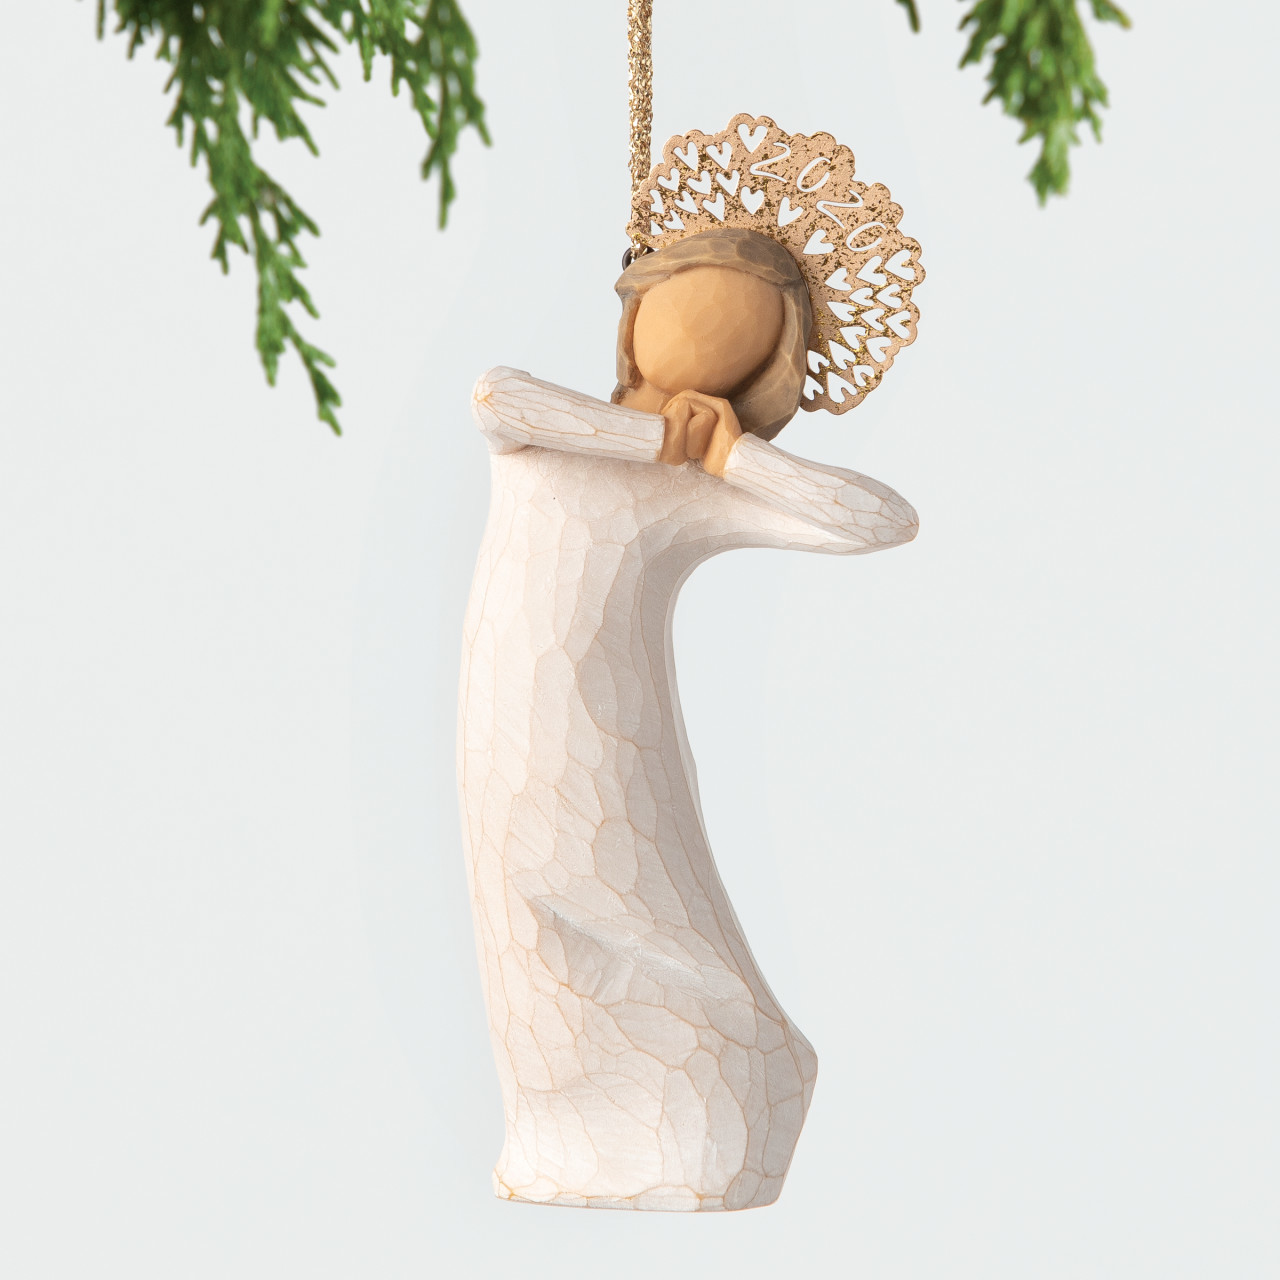 Willow Tree Christmas 2020 Ornament Willow Tree 2020 Dated Ornament by Susan Lordi at Hooked on